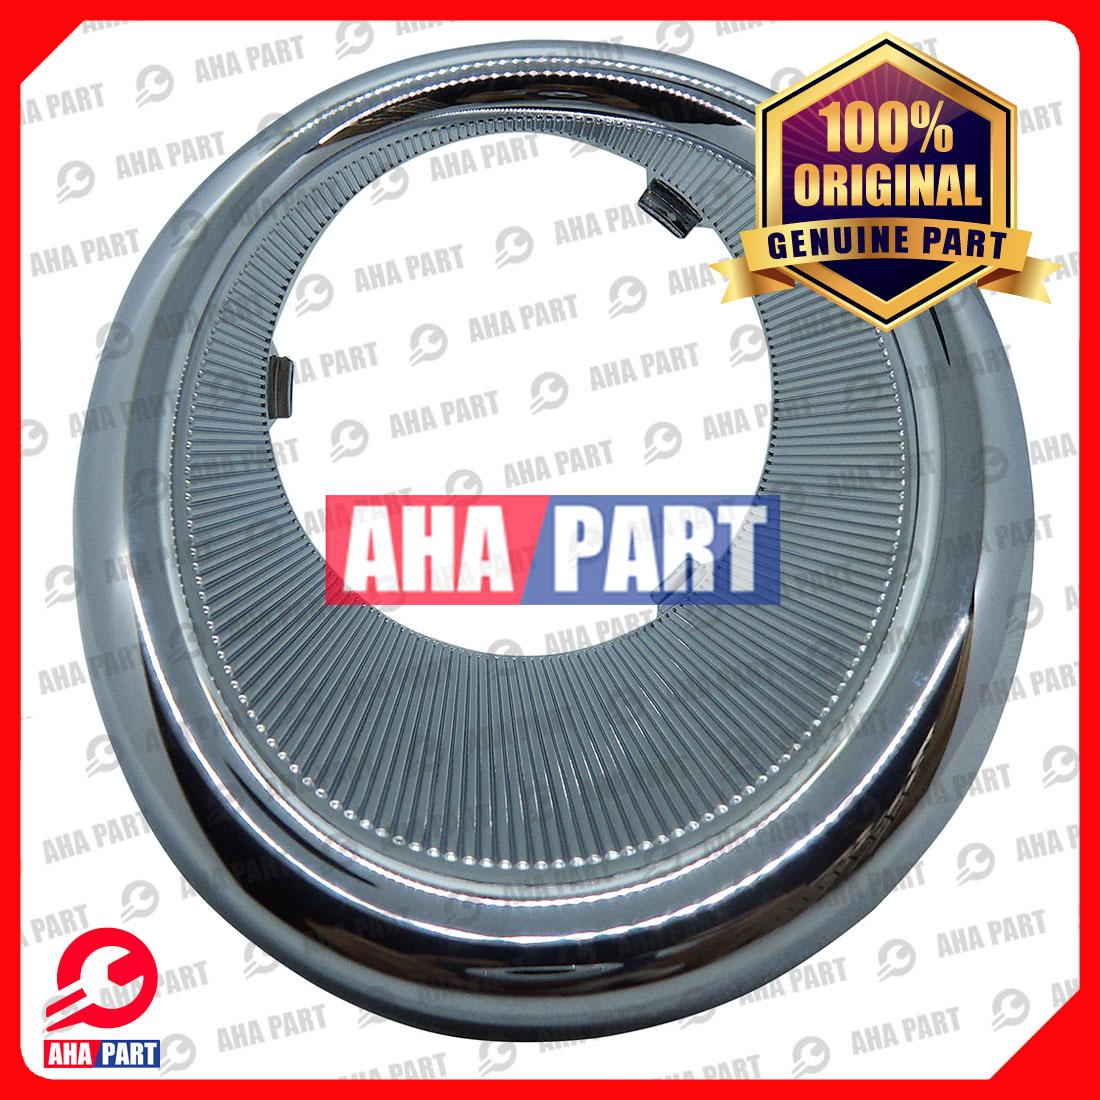 Daihatsu RIM FOG LAMP Kanan AYLA 1.0 Part No.81216-BZ040-001